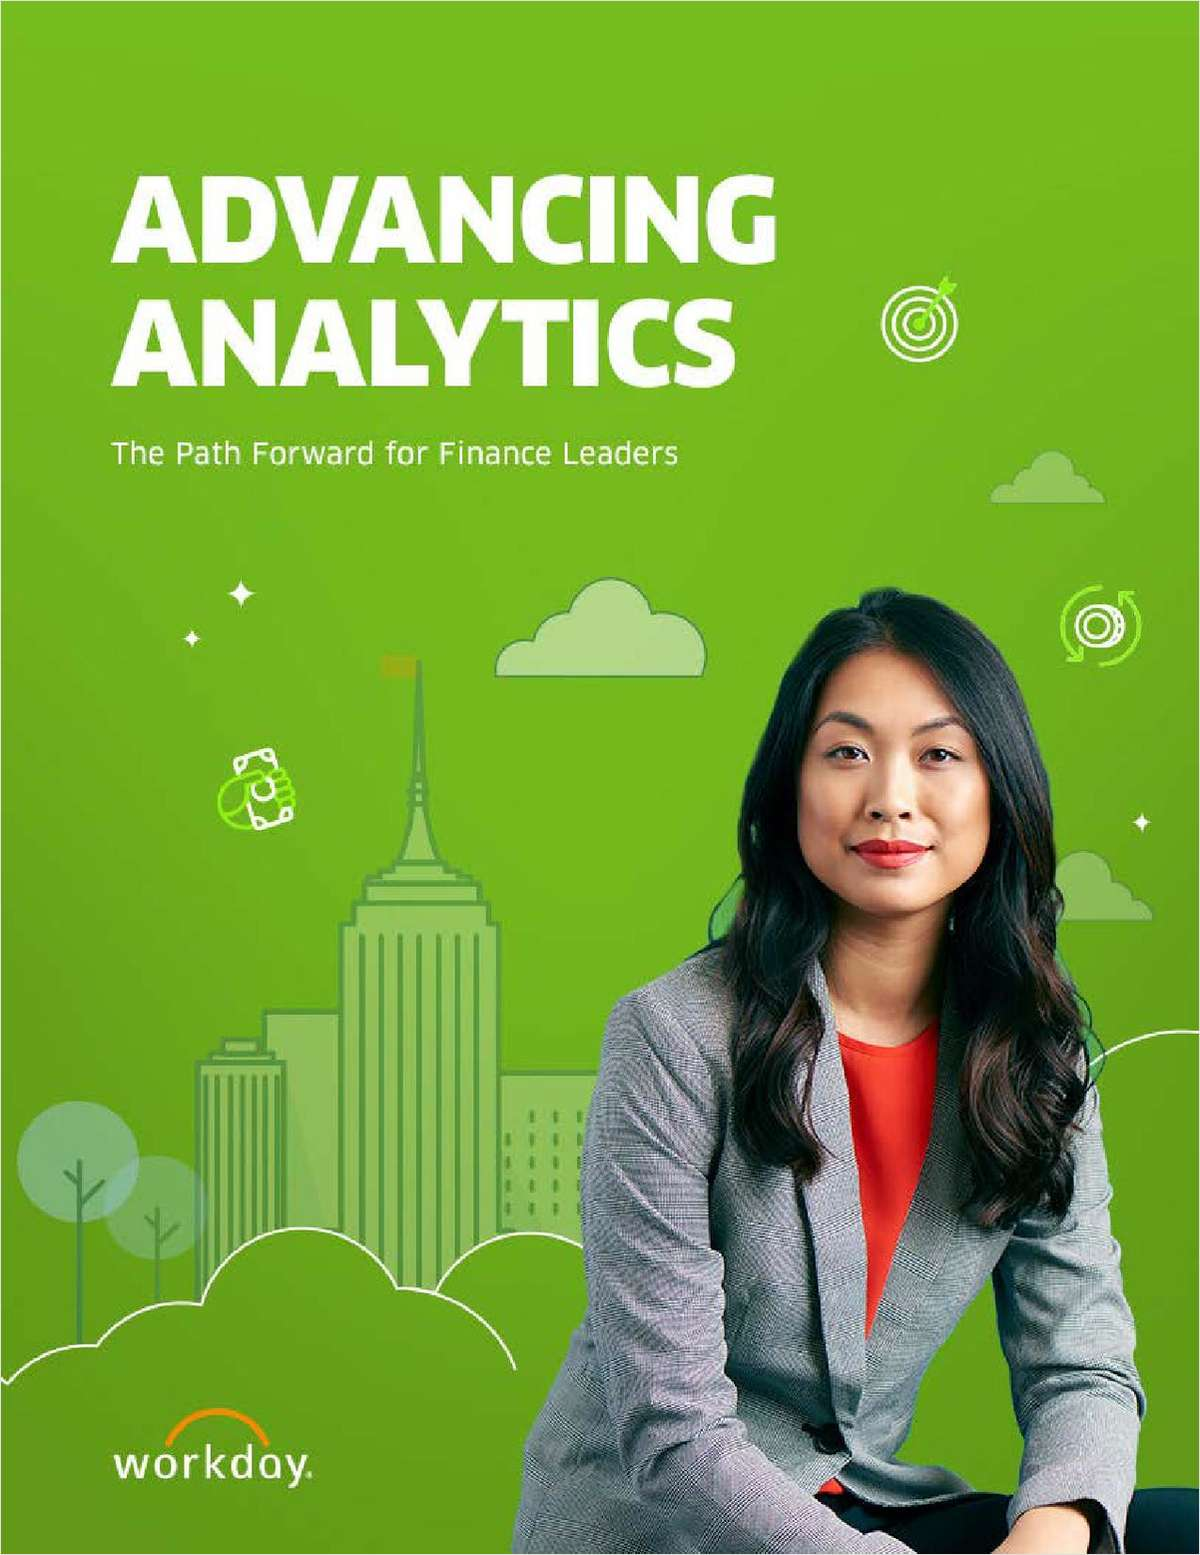 Advancing Analytics: The Path Forward for Finance Leaders